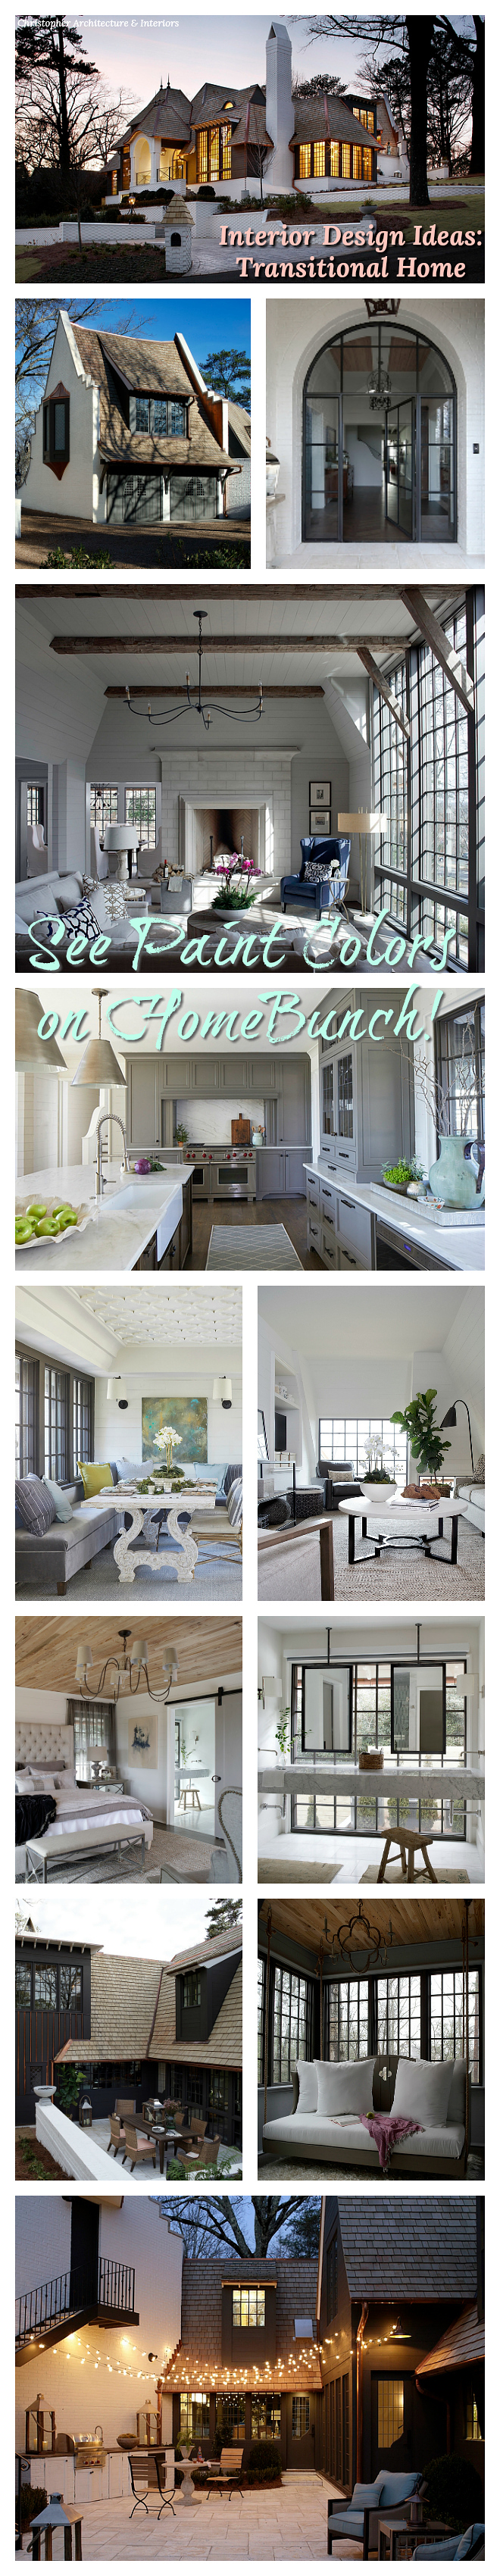 Interior Design Ideas Transitional Home Paint colors Interior Design Ideas Transitional Home Paint color #InteriorDesignIdeas #TransitionalHome #paintcolor